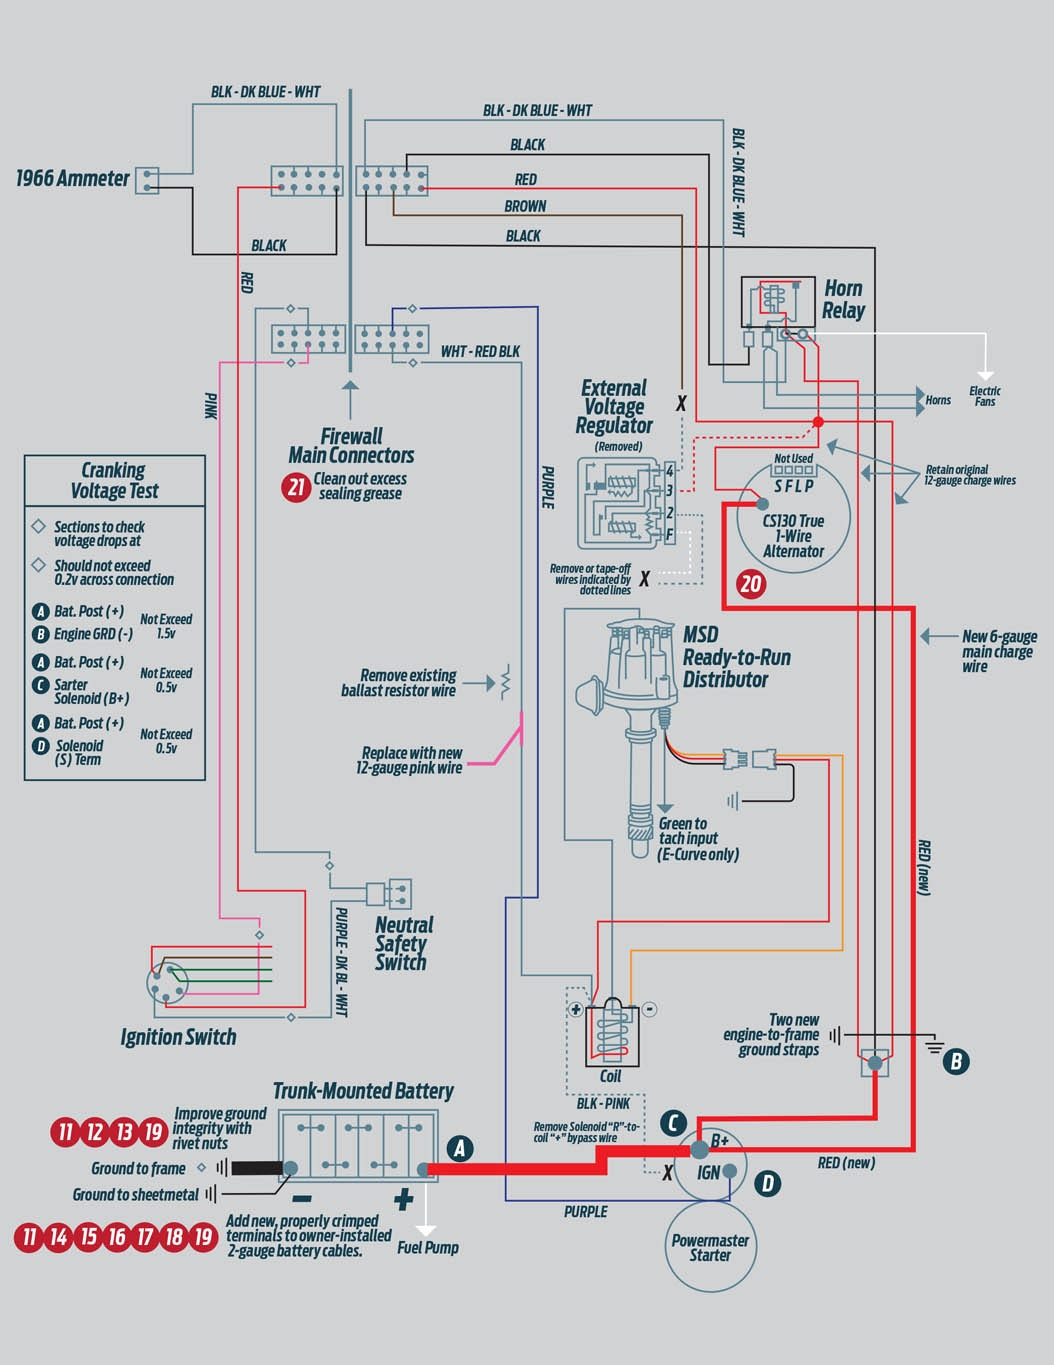 hight resolution of 1966 chevelle dash wiring harness free download diagram wiring library 1966 chevelle wiring diagram online 1966